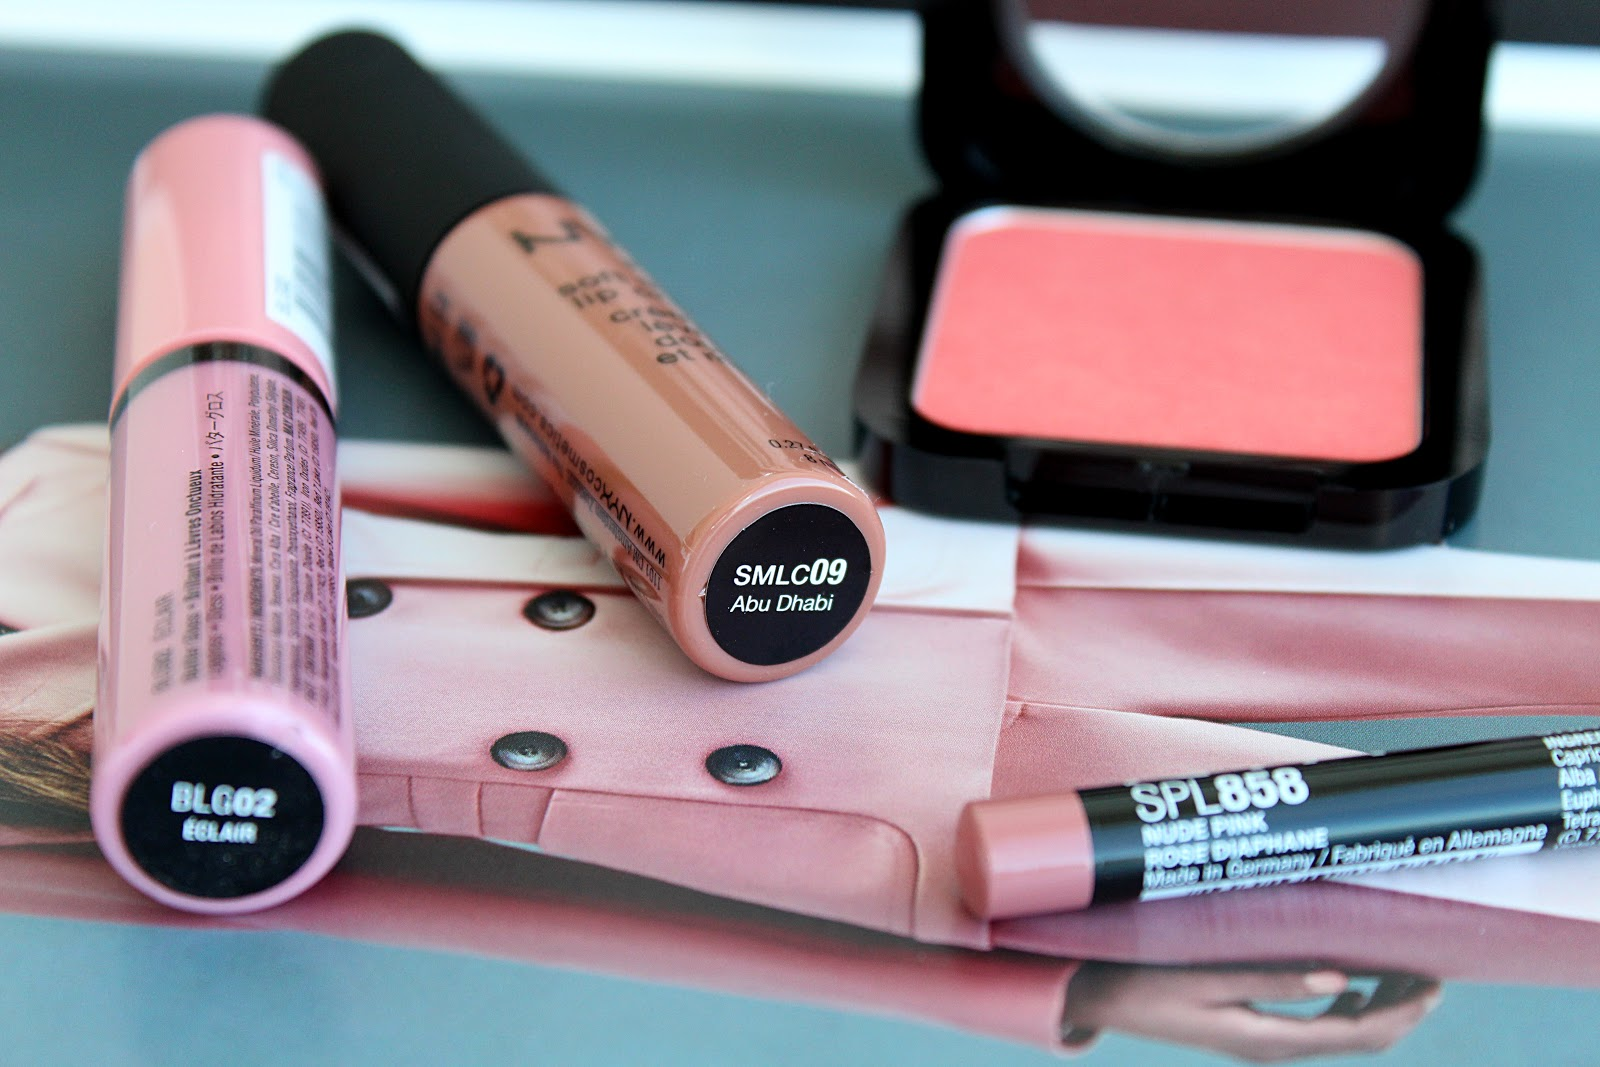 NYX Soft Matte Lip Cream Review, NYX HD Blush Review, NYX Butter Gloss Review